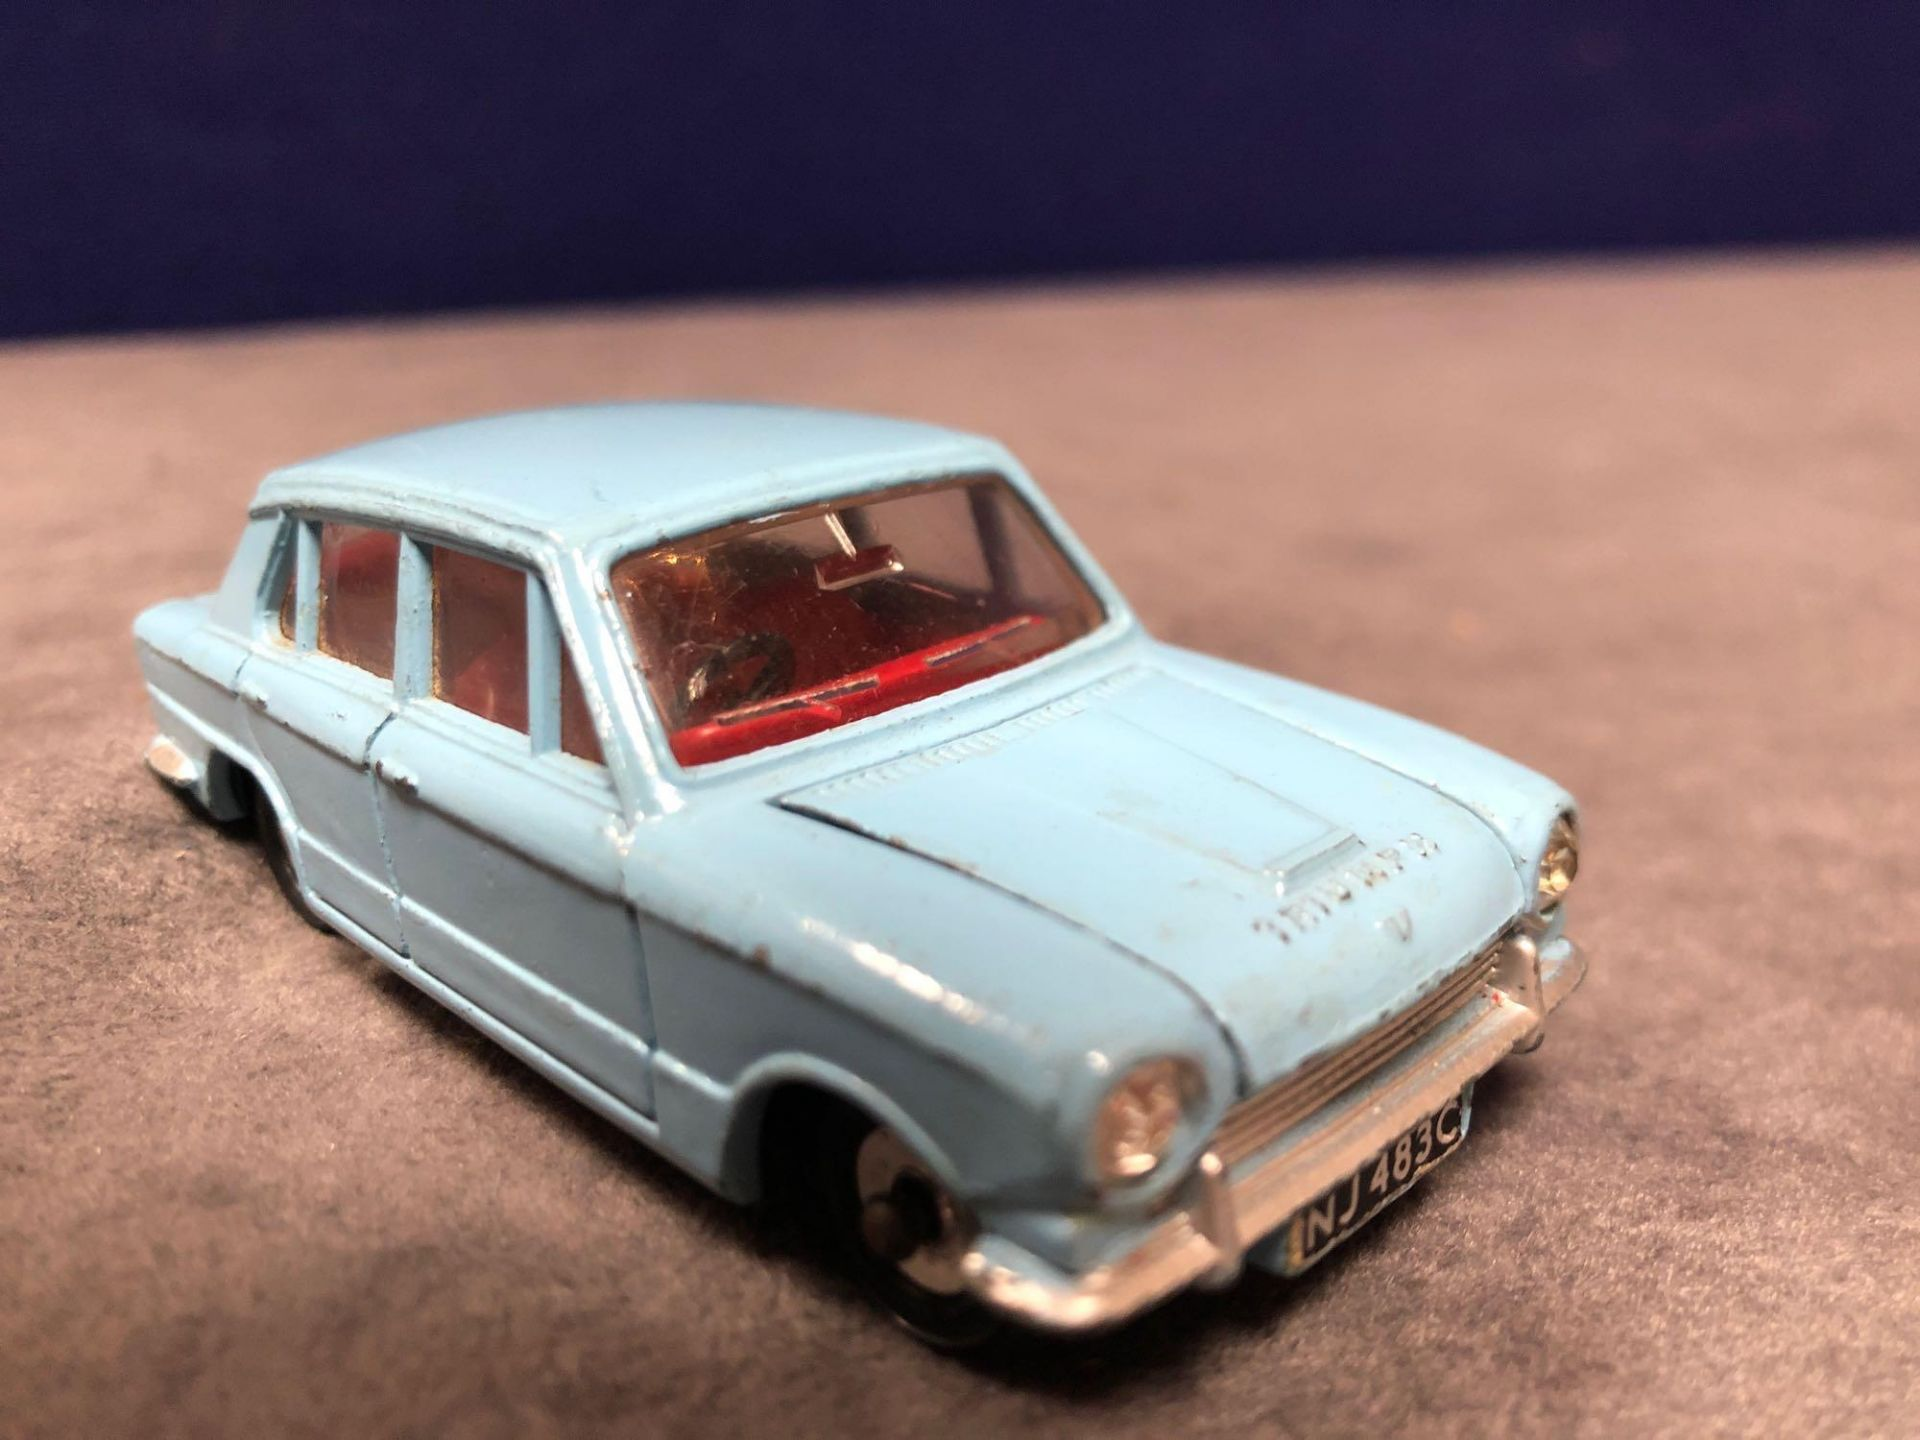 Dinky #162 Triumph 1300 Blue - Red Interior, Spun Hubs And Number Plates 1966 - 1969 Unboxed very - Image 2 of 4